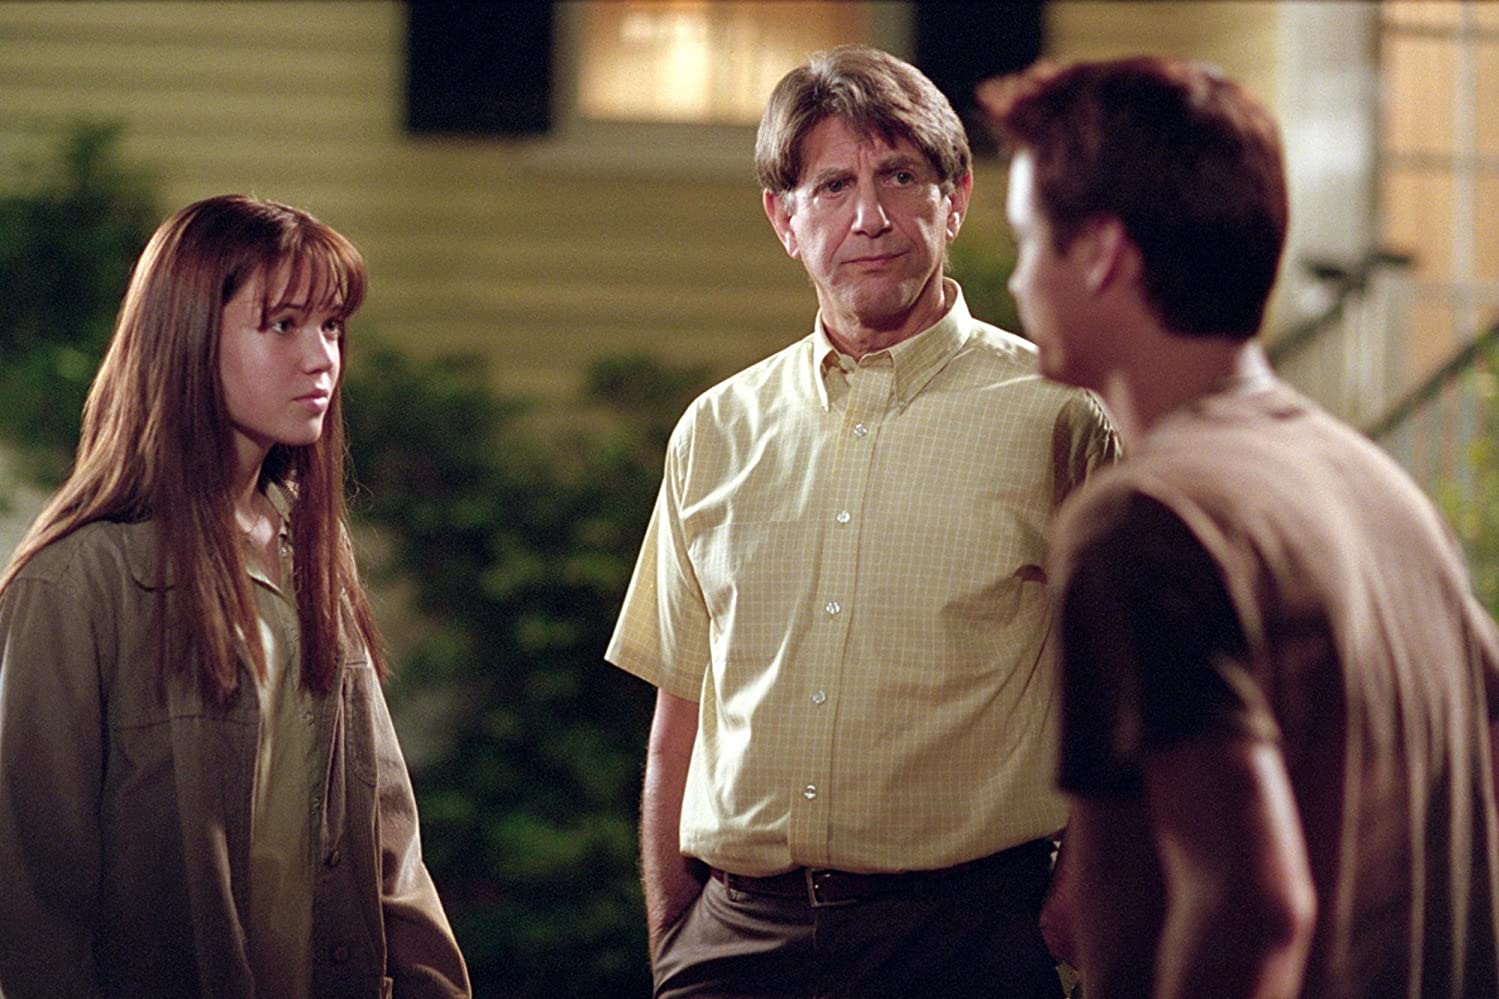 Peter Coyote, Mandy Moore, and Shane West in A Walk to Remember (2002)